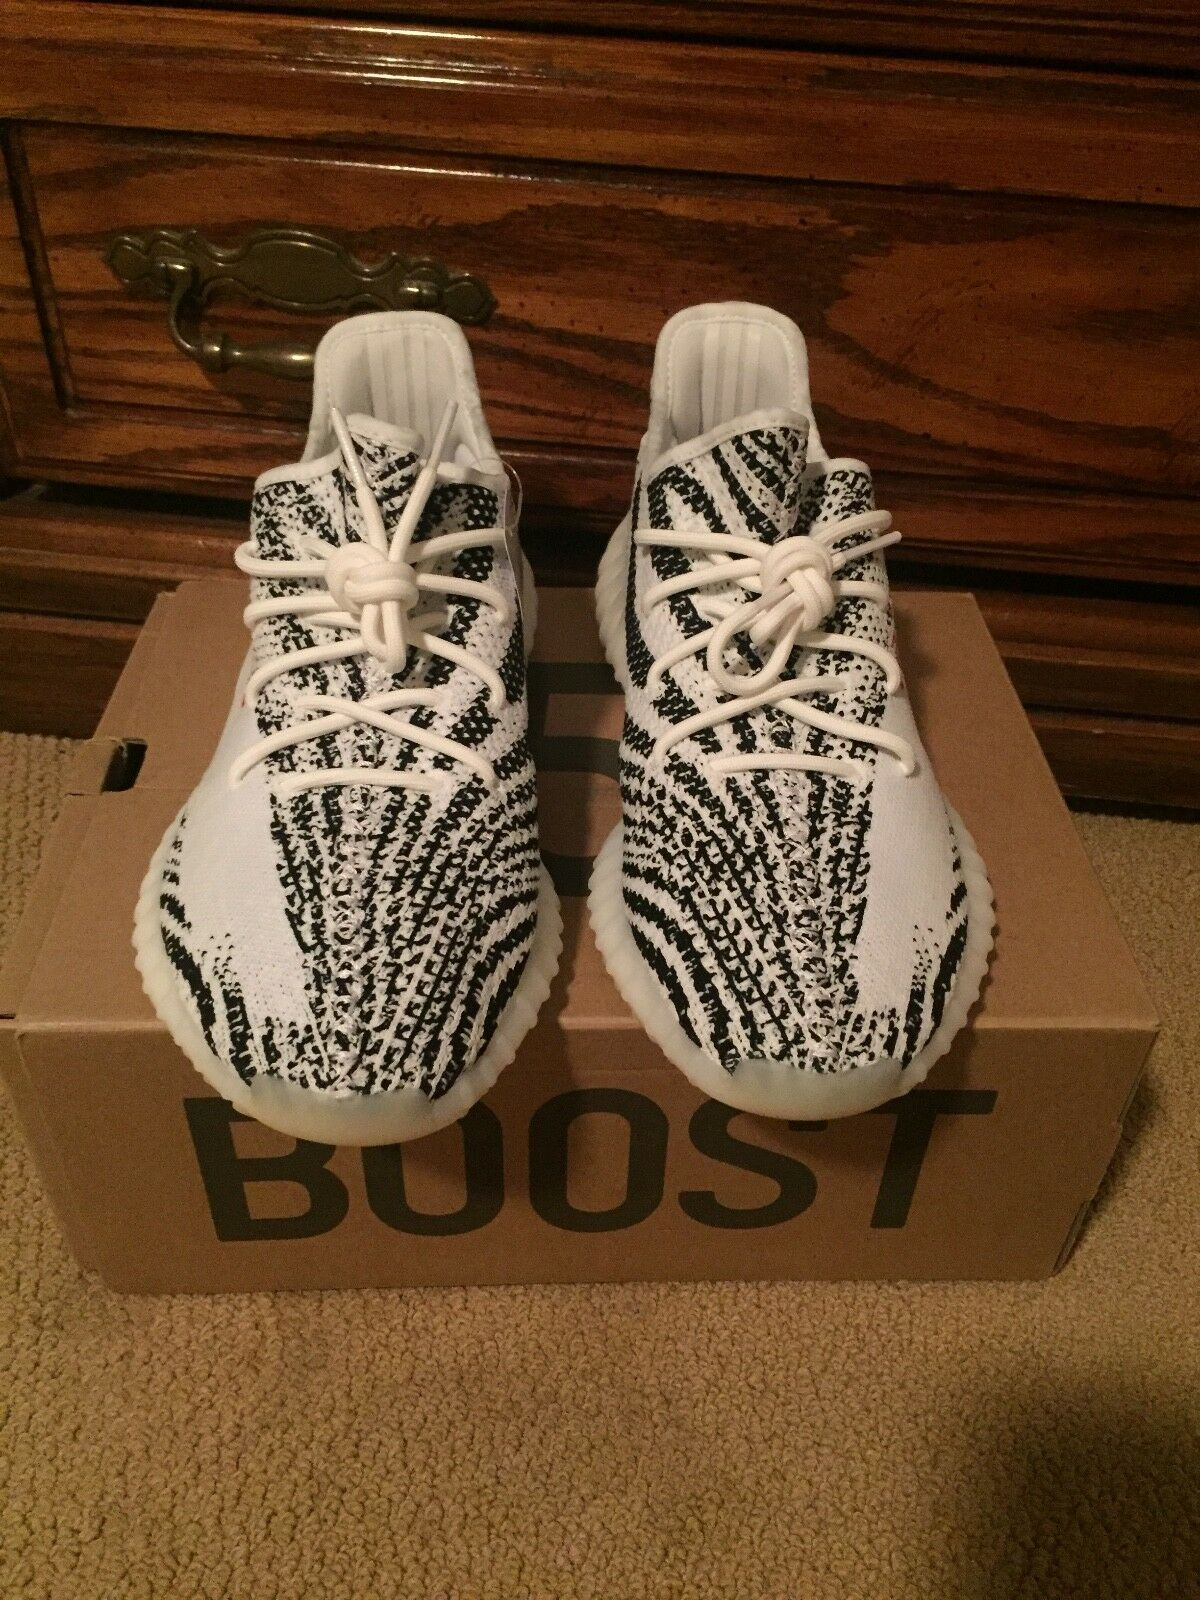 ADIDAS YEEZY BOOST 350 V2 size 11. 11. 11. WHITE BLACK RED ZEBRA. 100% AUTHENTIC e734d7